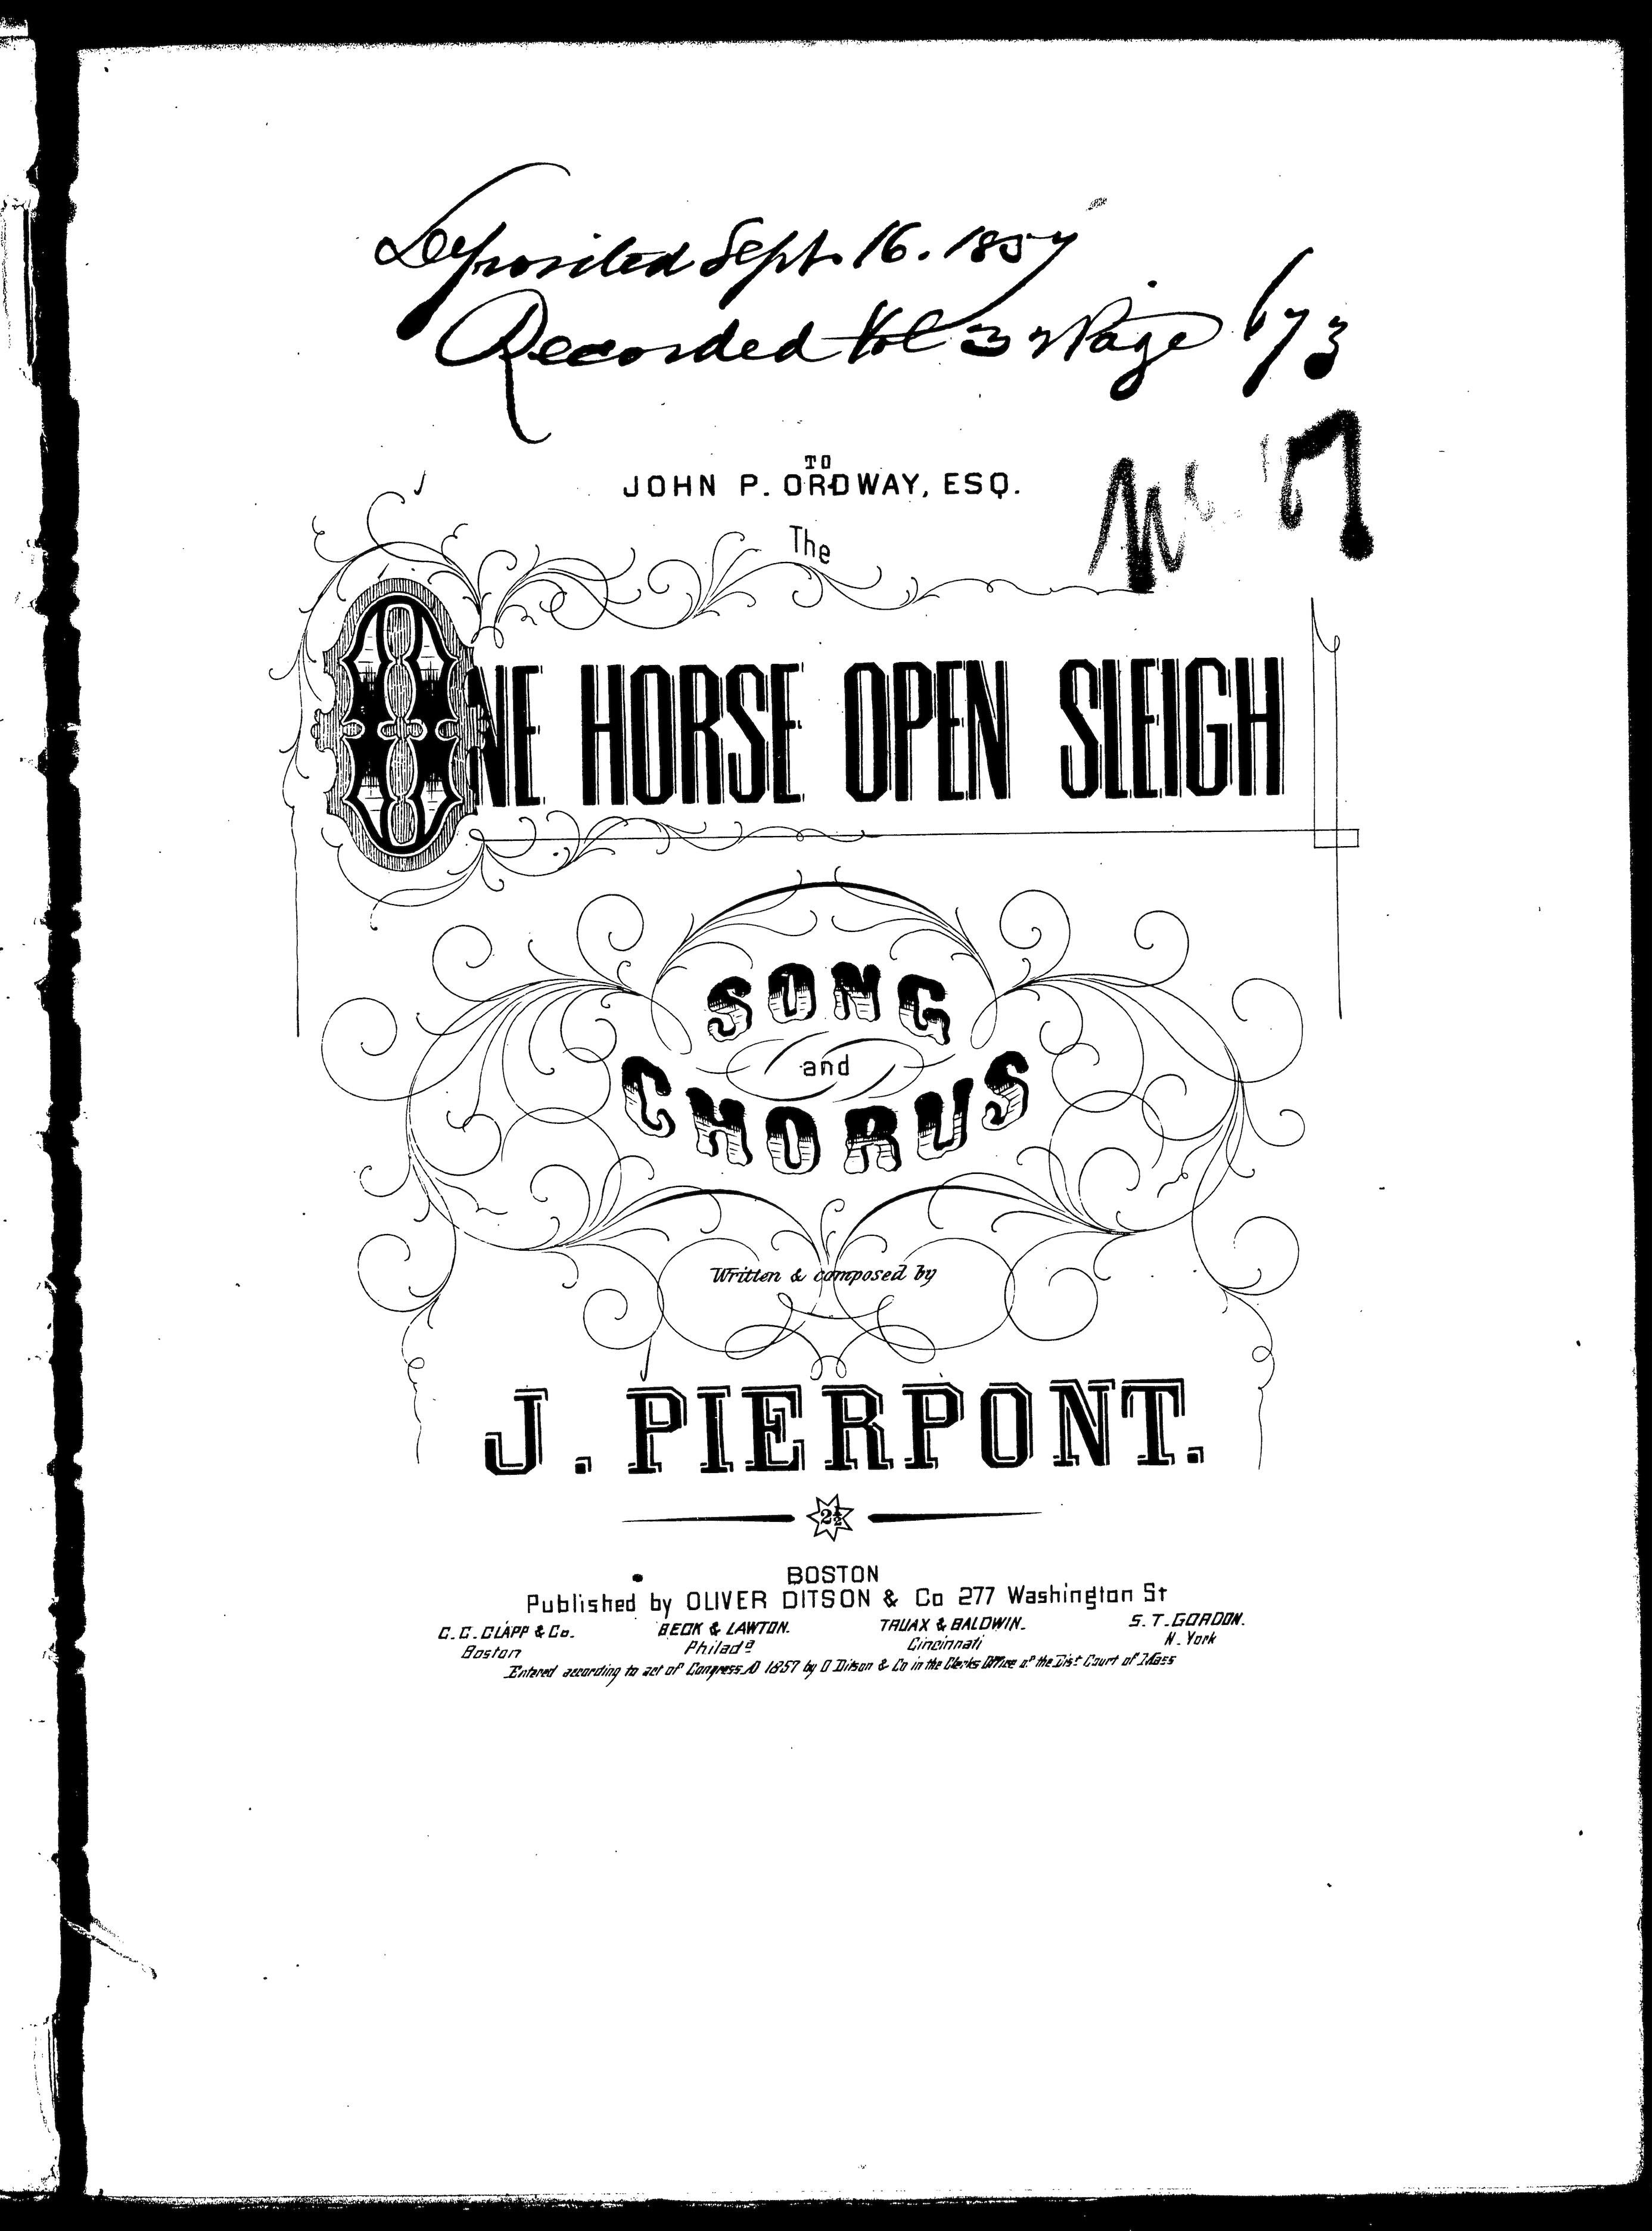 The One Horse Open Sleigh Library Of Congress